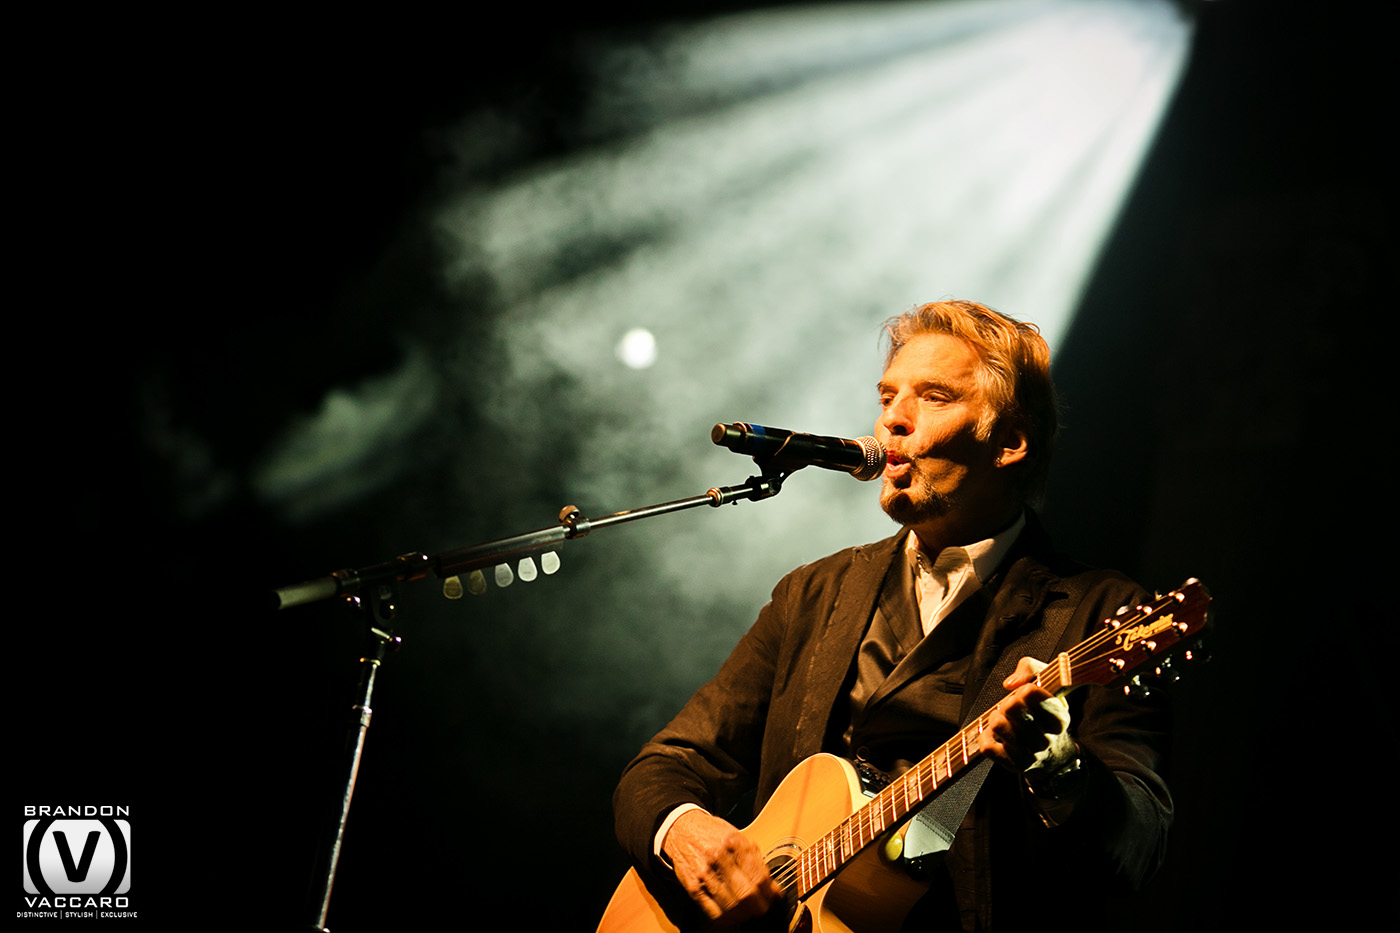 commercial-kenny-loggins-country-singer.jpg